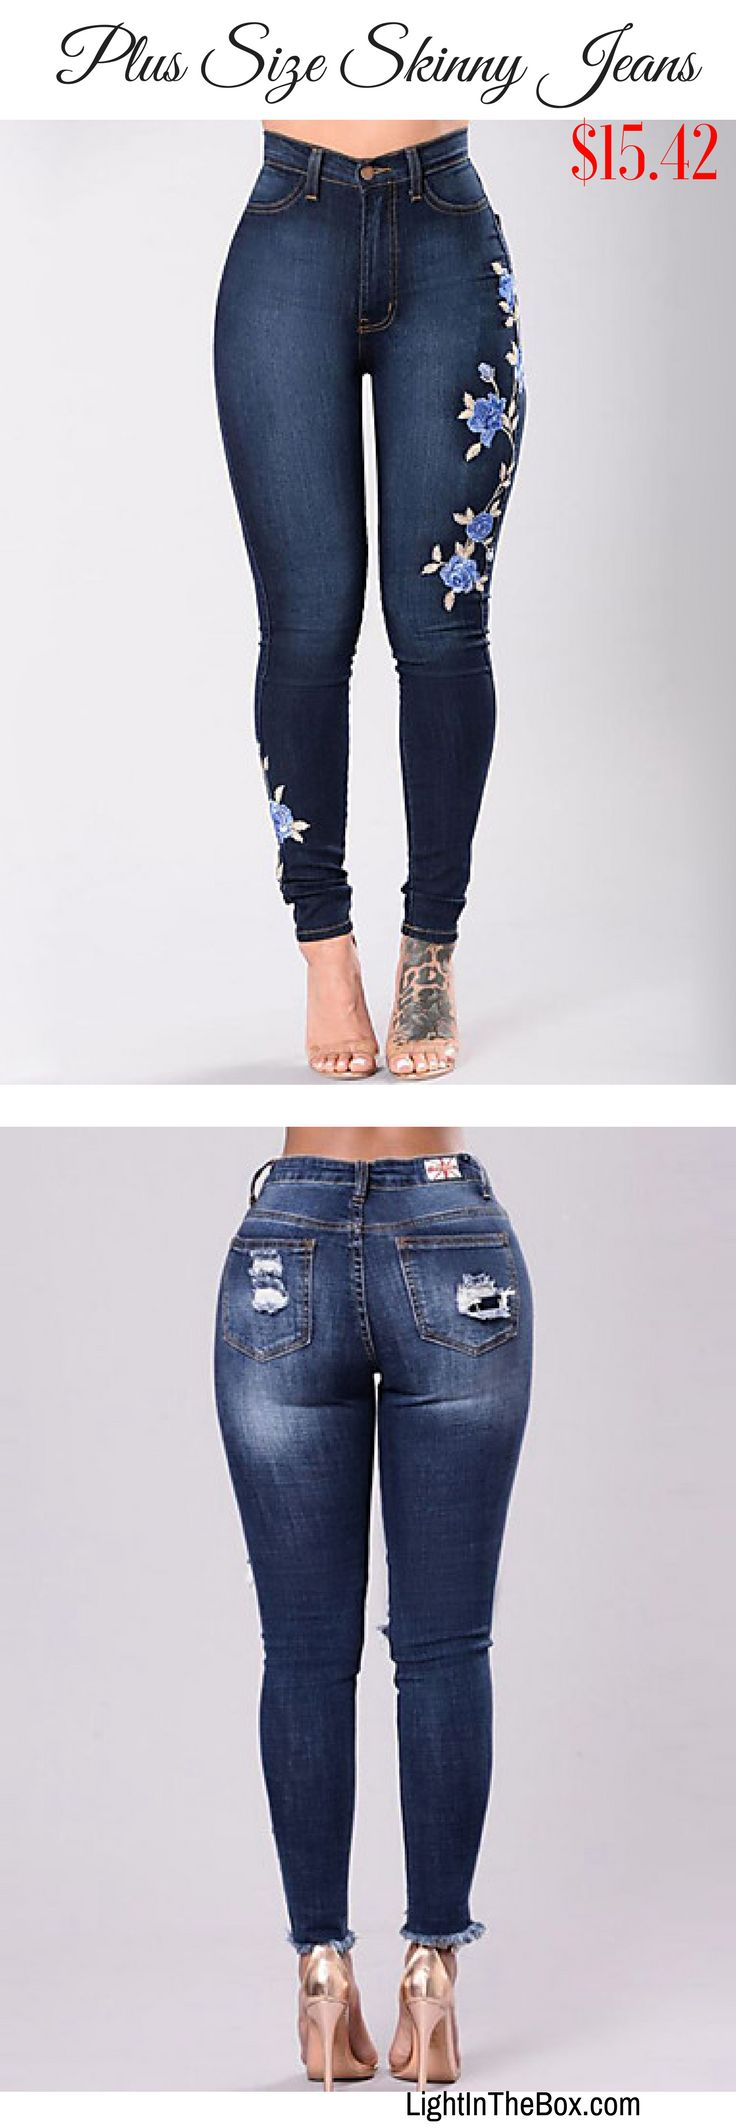 Plus size skinny denim jeans with floral print at just $15.42. Like them?  Click